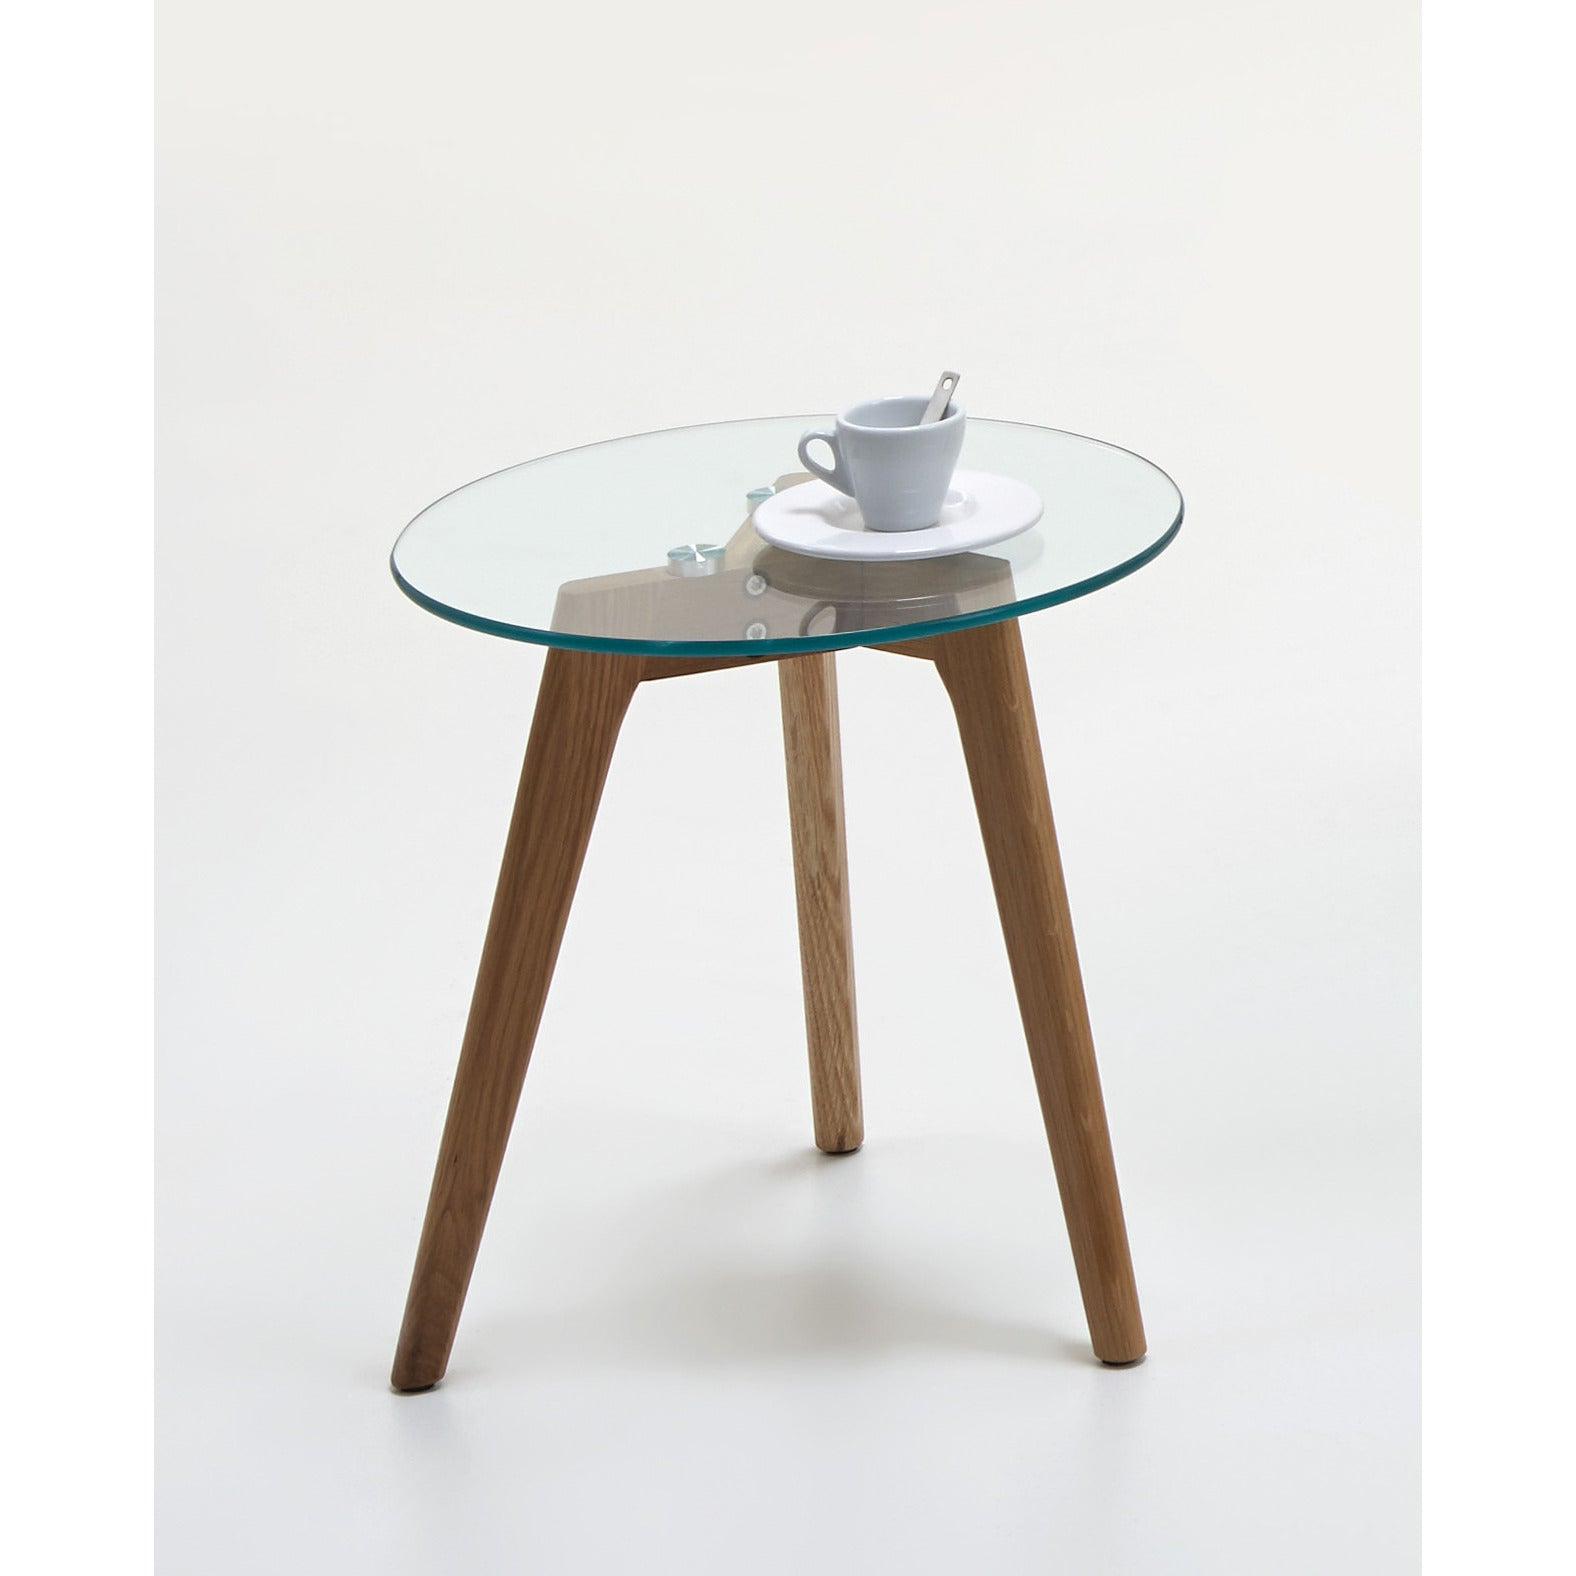 "California"" Scandinavian Style Coffee & End Table Glass & Wood"